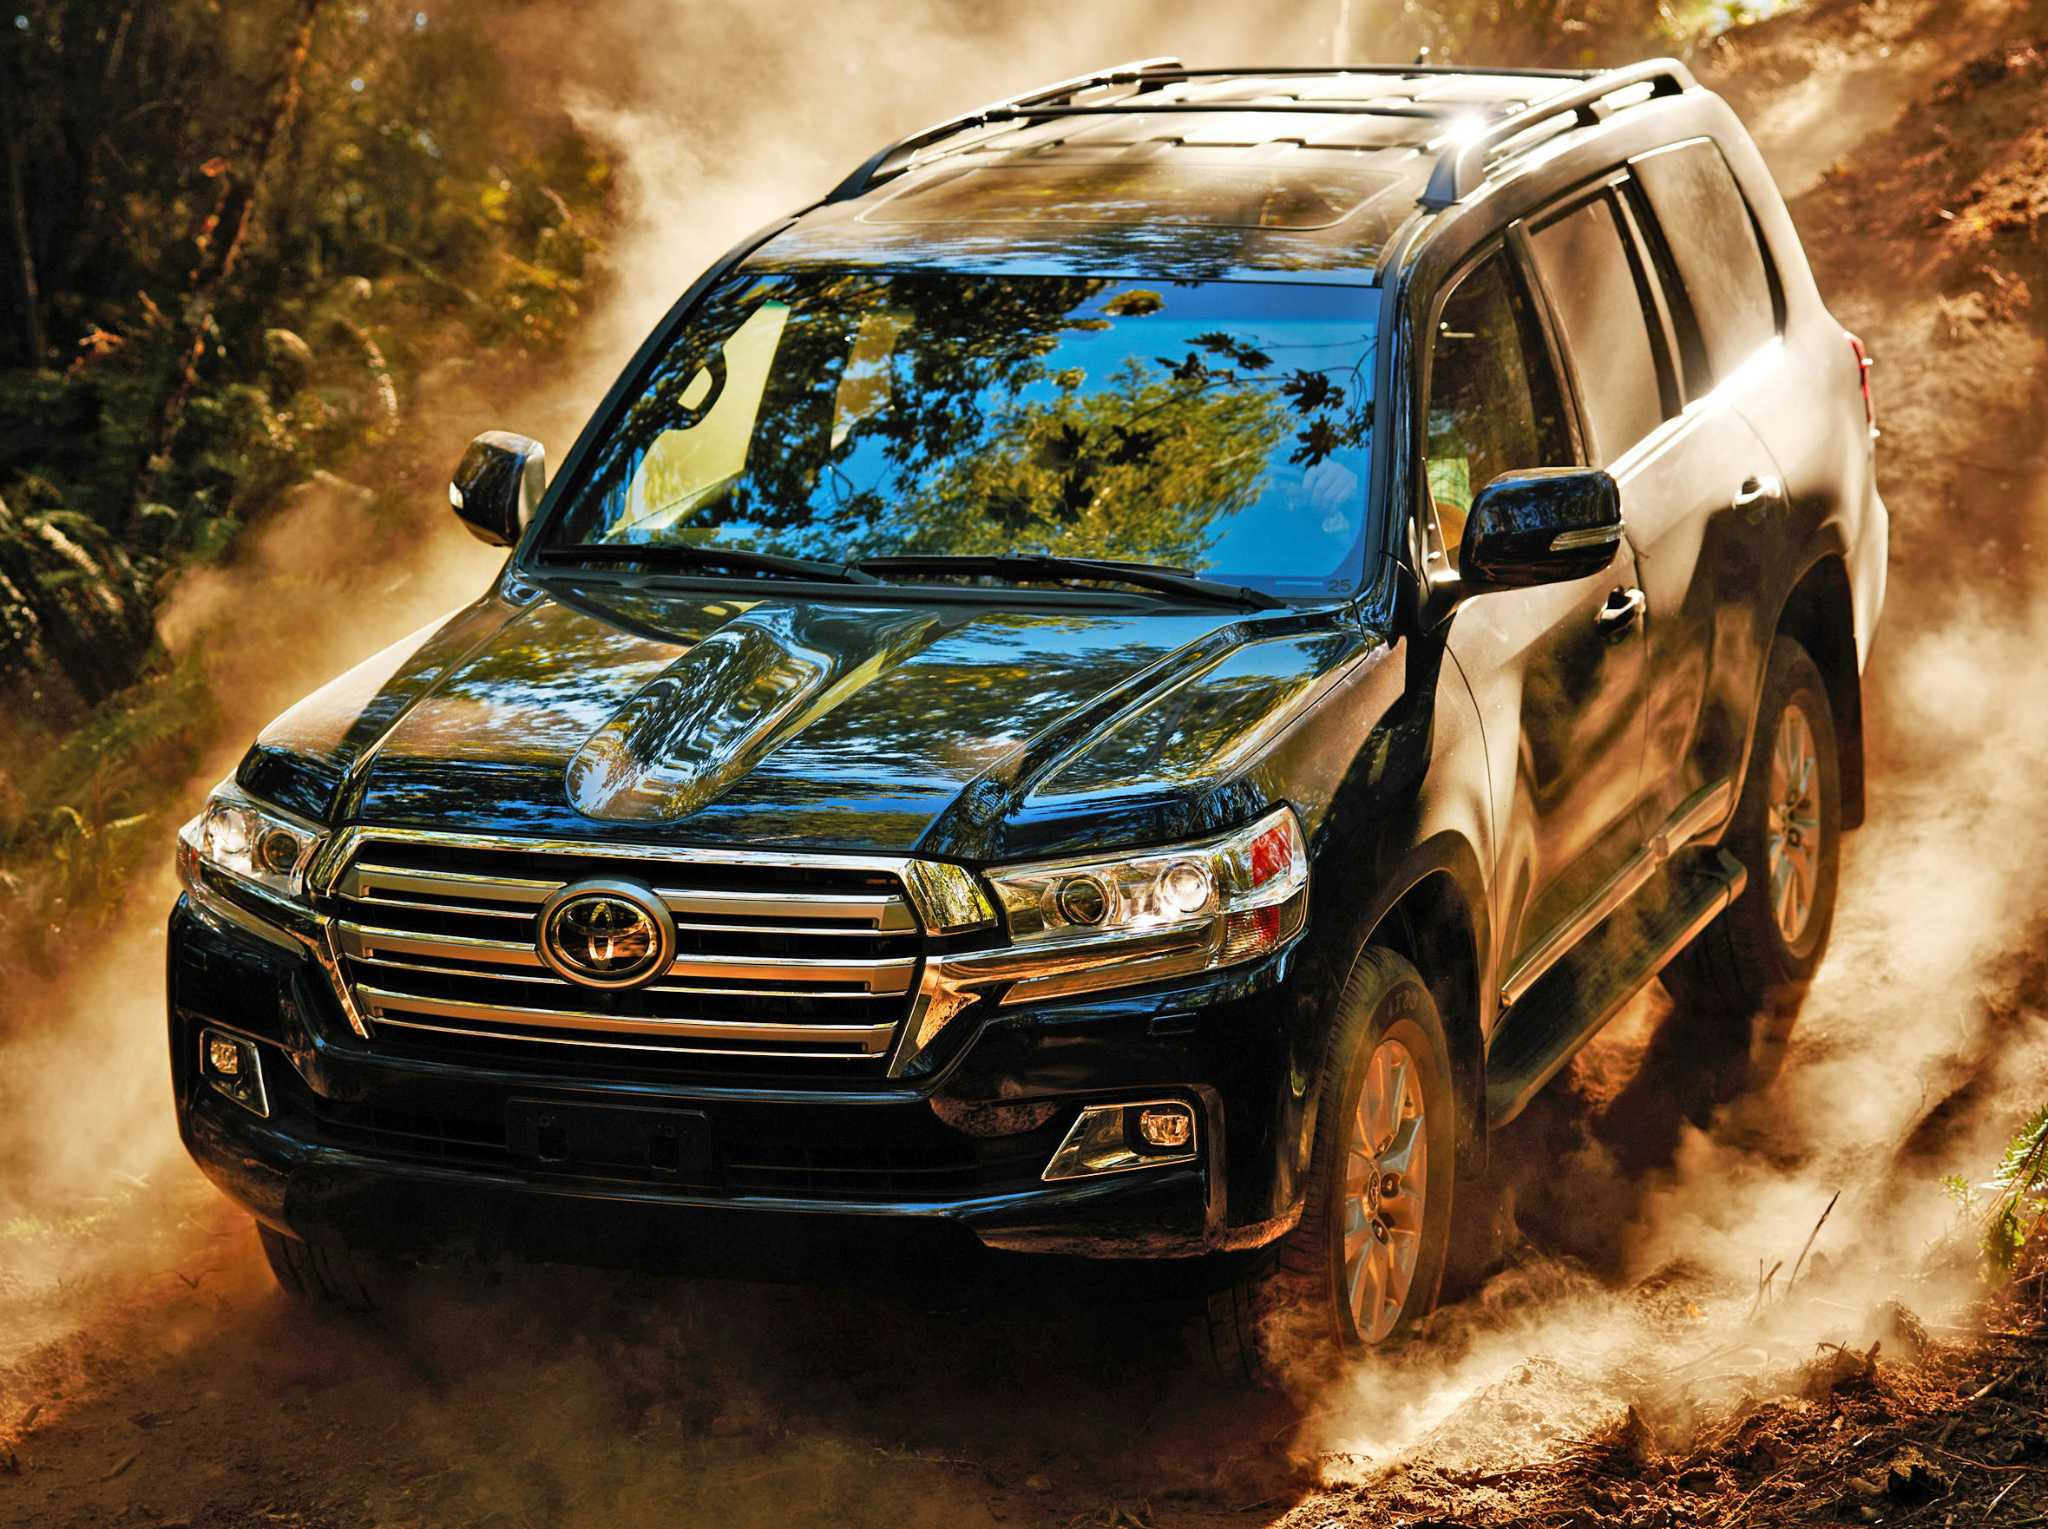 Toyota's redesigned Land Cruiser excels on, off road